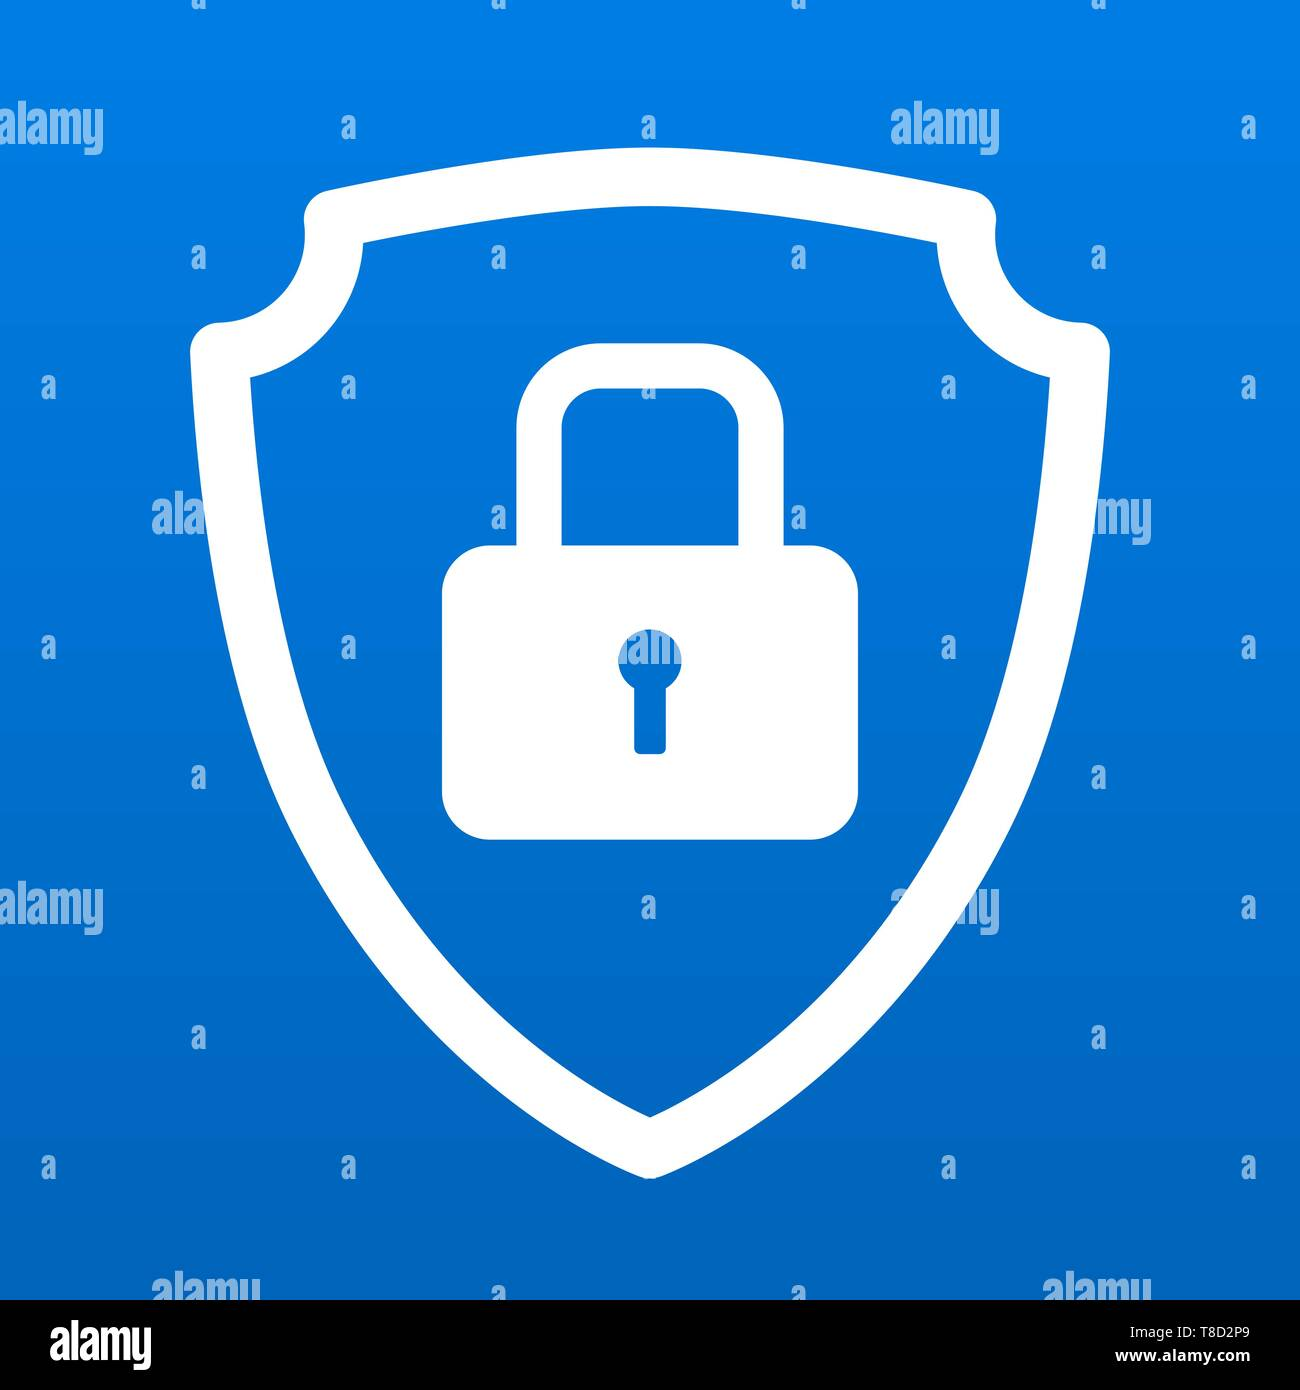 Shield icon symbol with security lock for safety and protection vector illustration - Stock Image